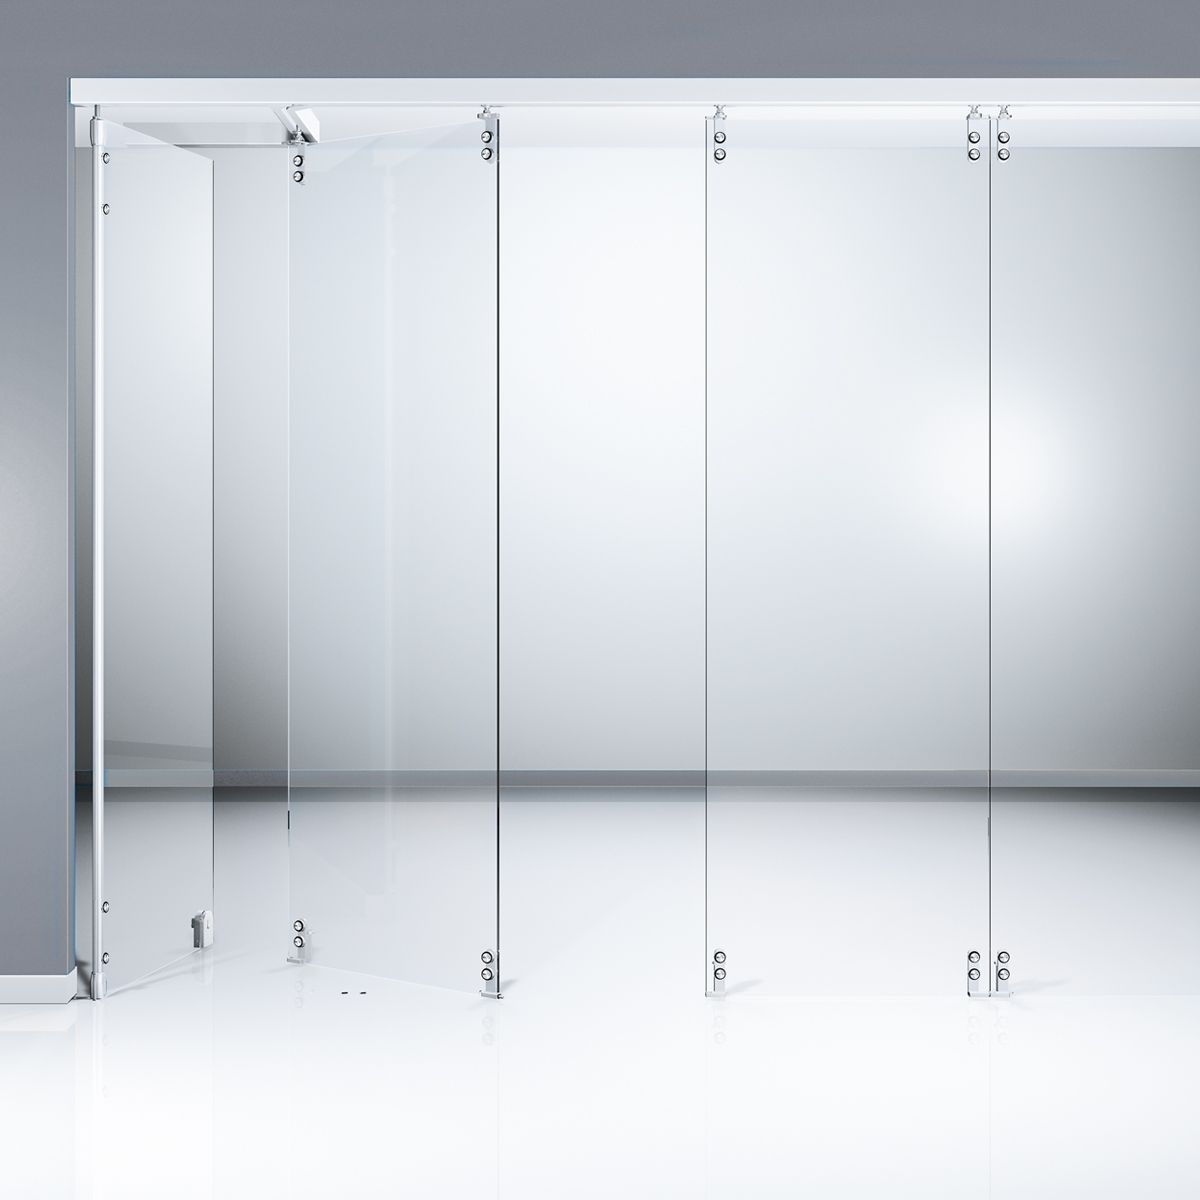 This is an image of the dorma sliding wall hsw gp doors for Sliding glass walls